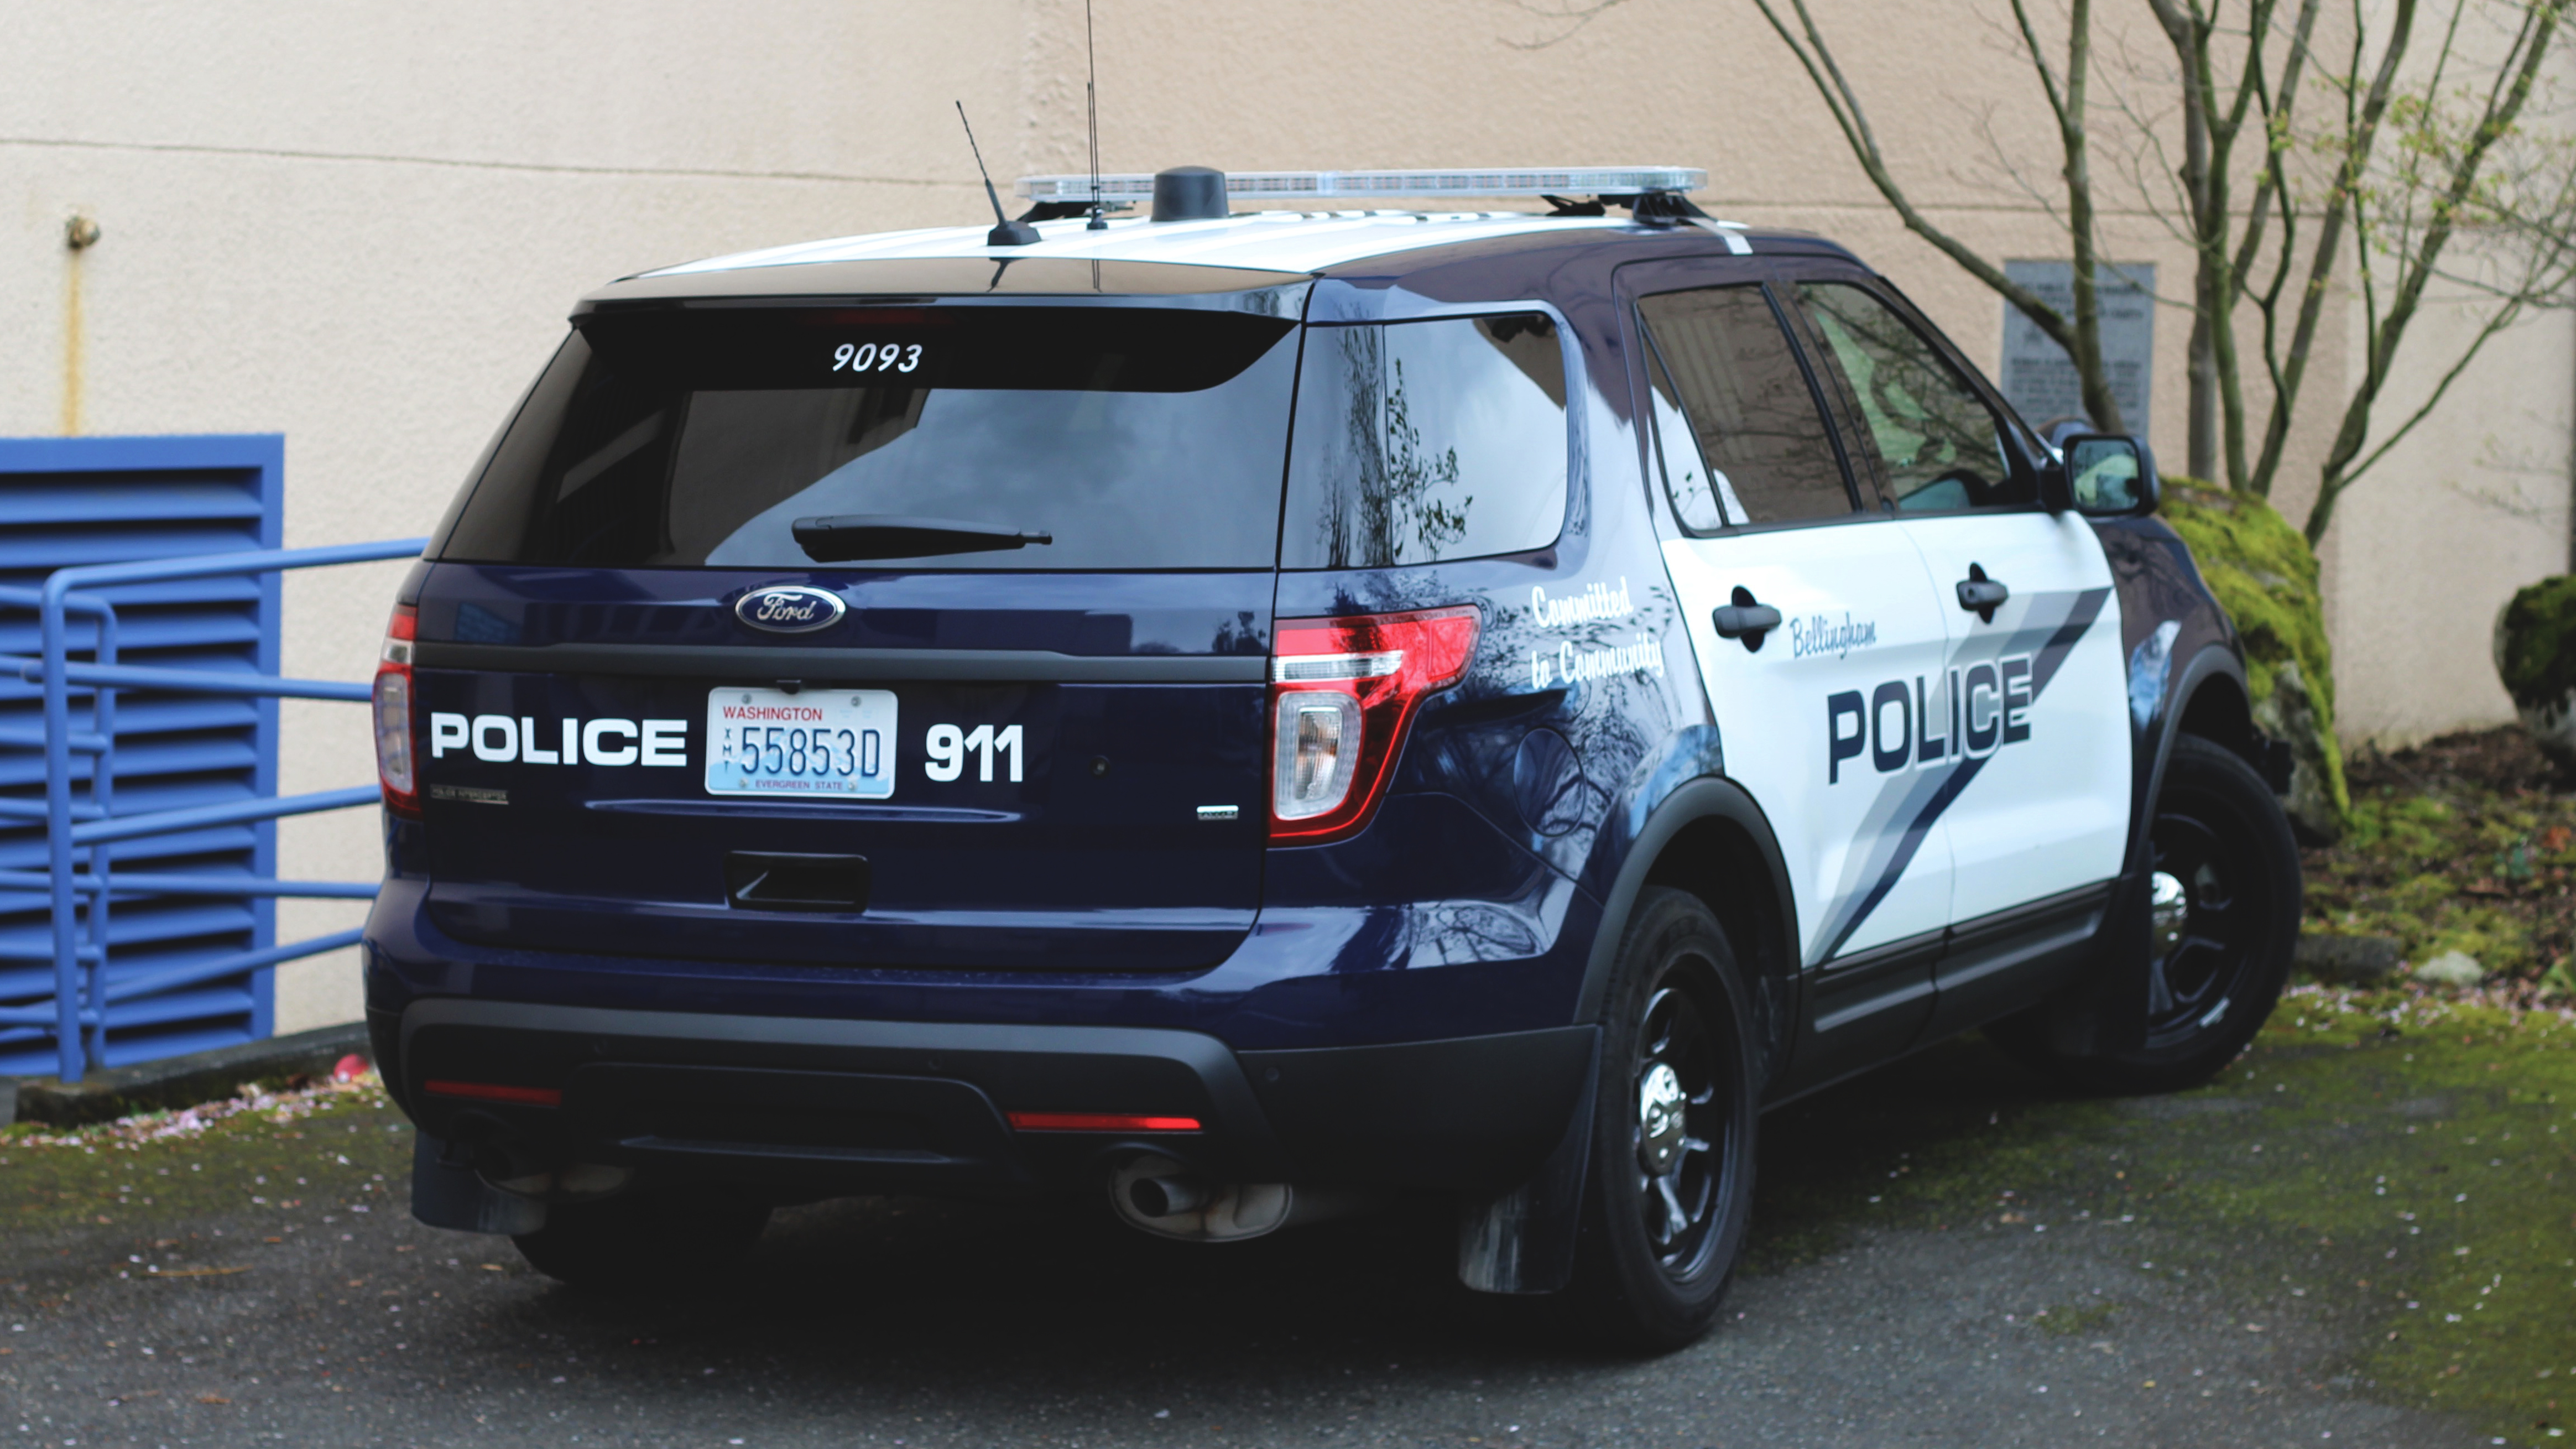 Ford police utility: bellingham police (9093) photo